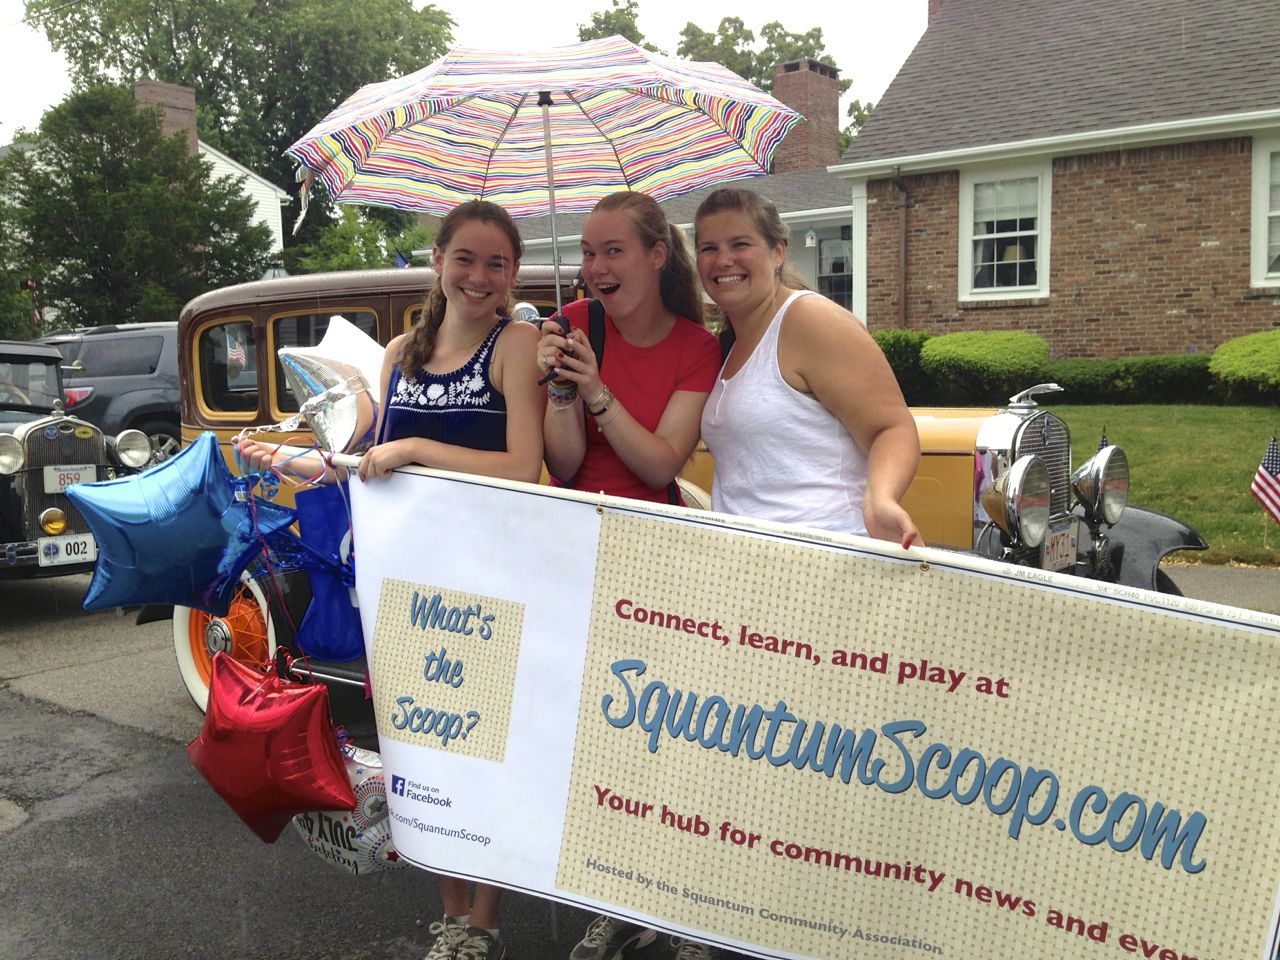 Squantum Scoop (Photo: Monica Lee)